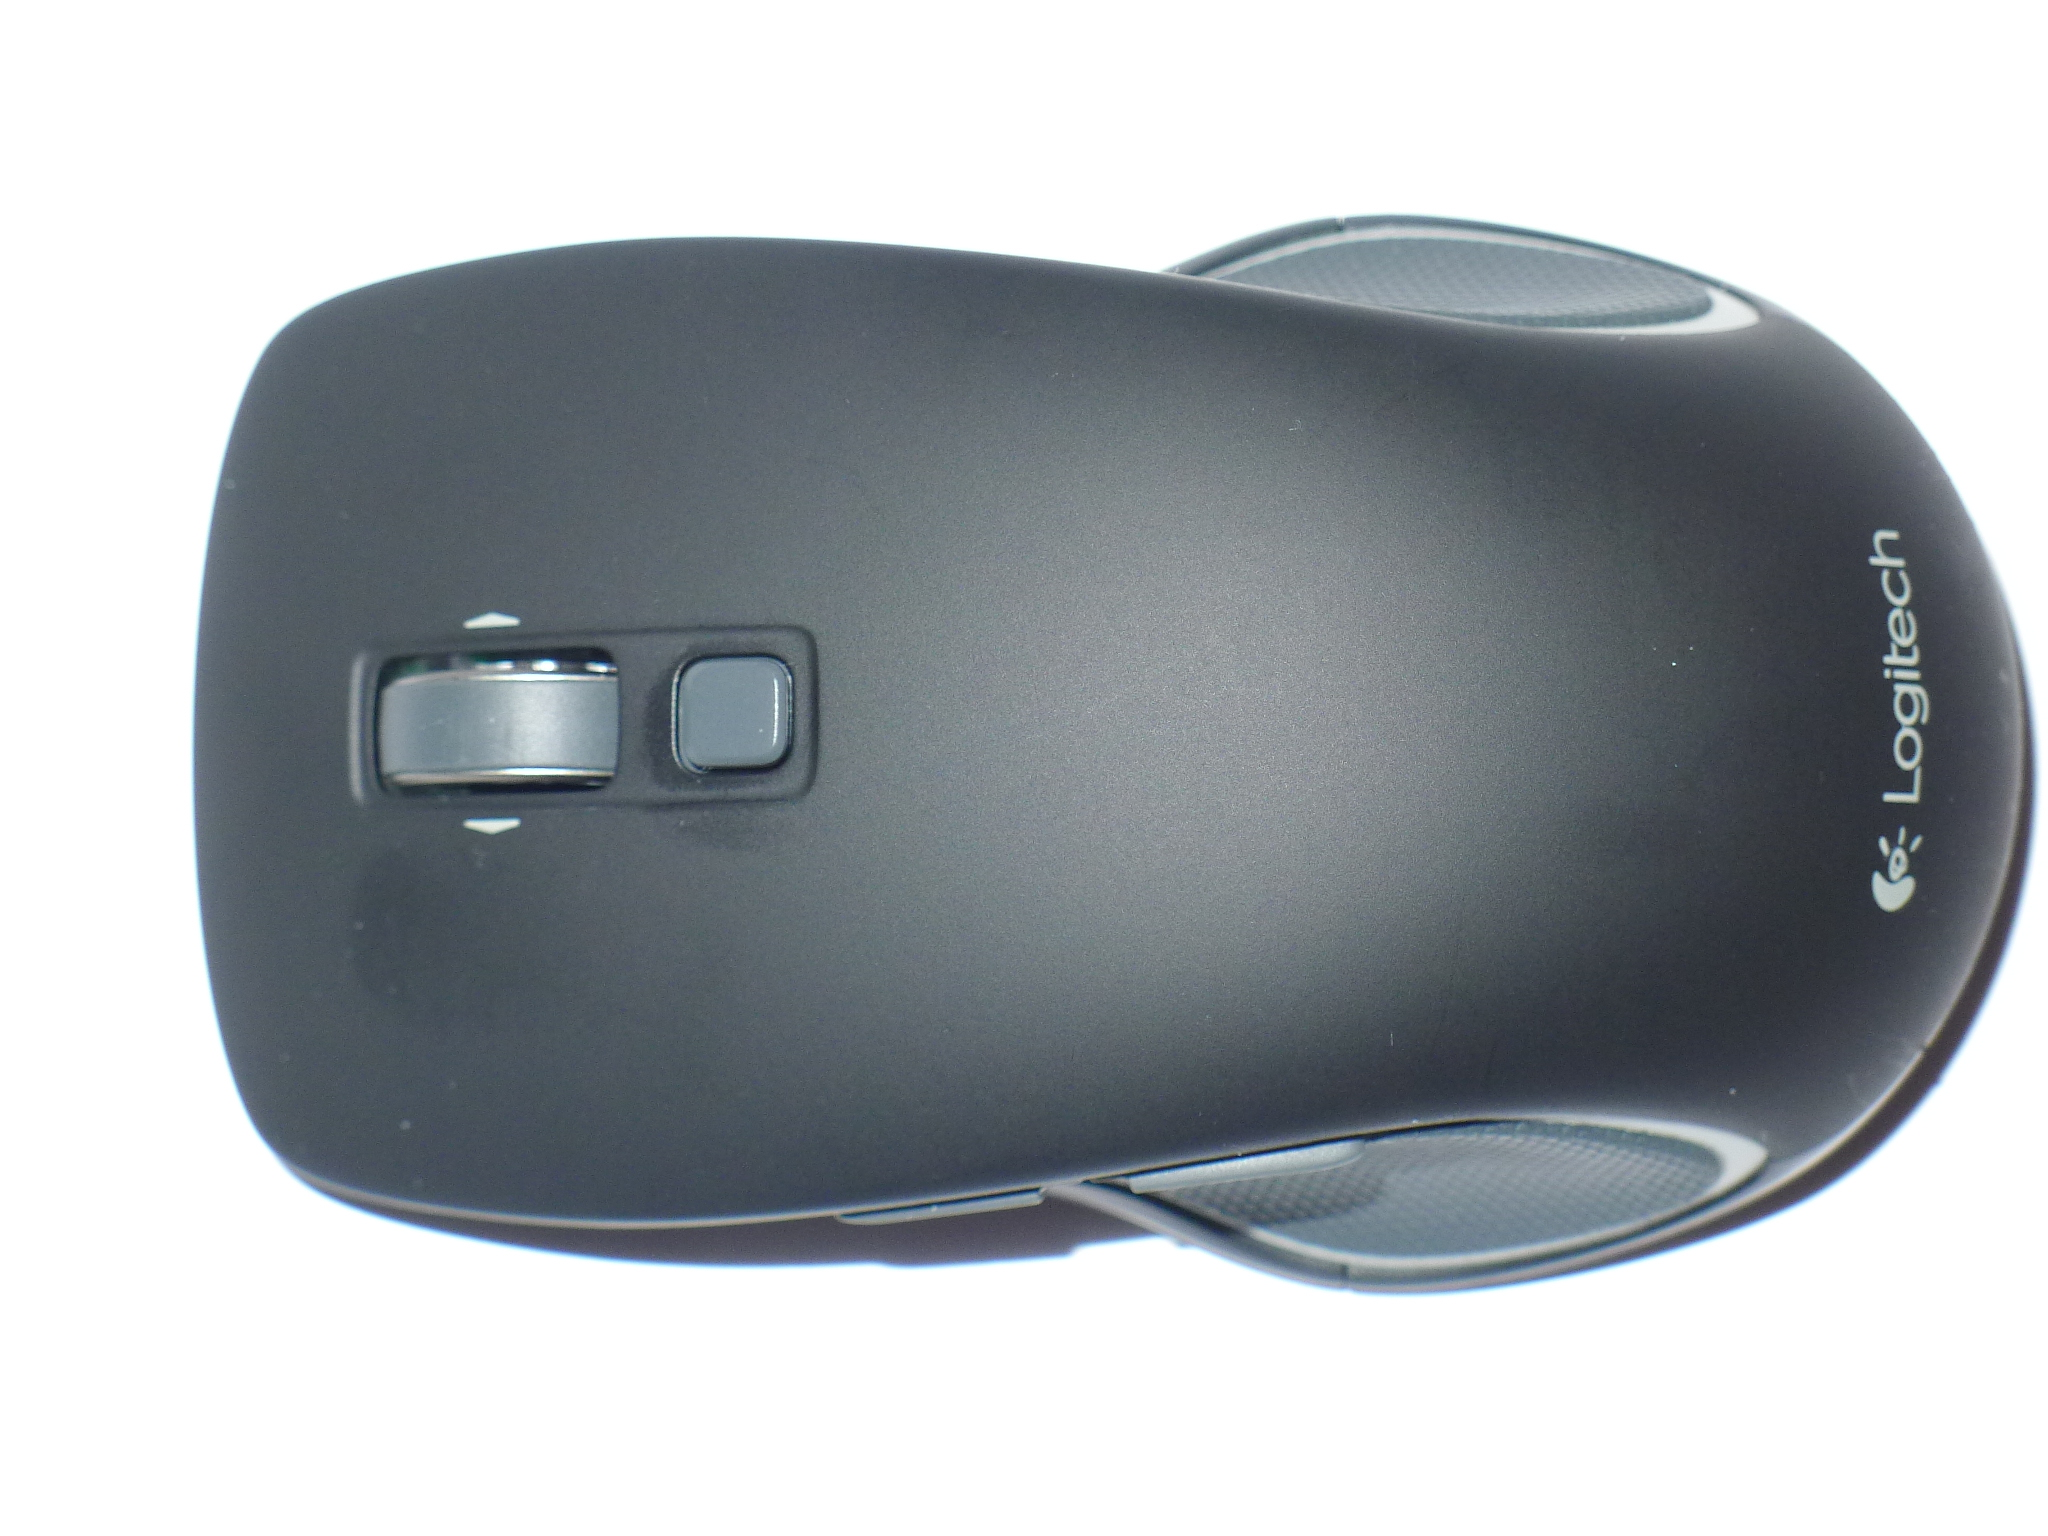 7cb096a79c1 The M560 is a lightweight but solid well built mouse fits nicely in the  hand for desktop use but is small enough to fit into your travel bag and  take on the ...